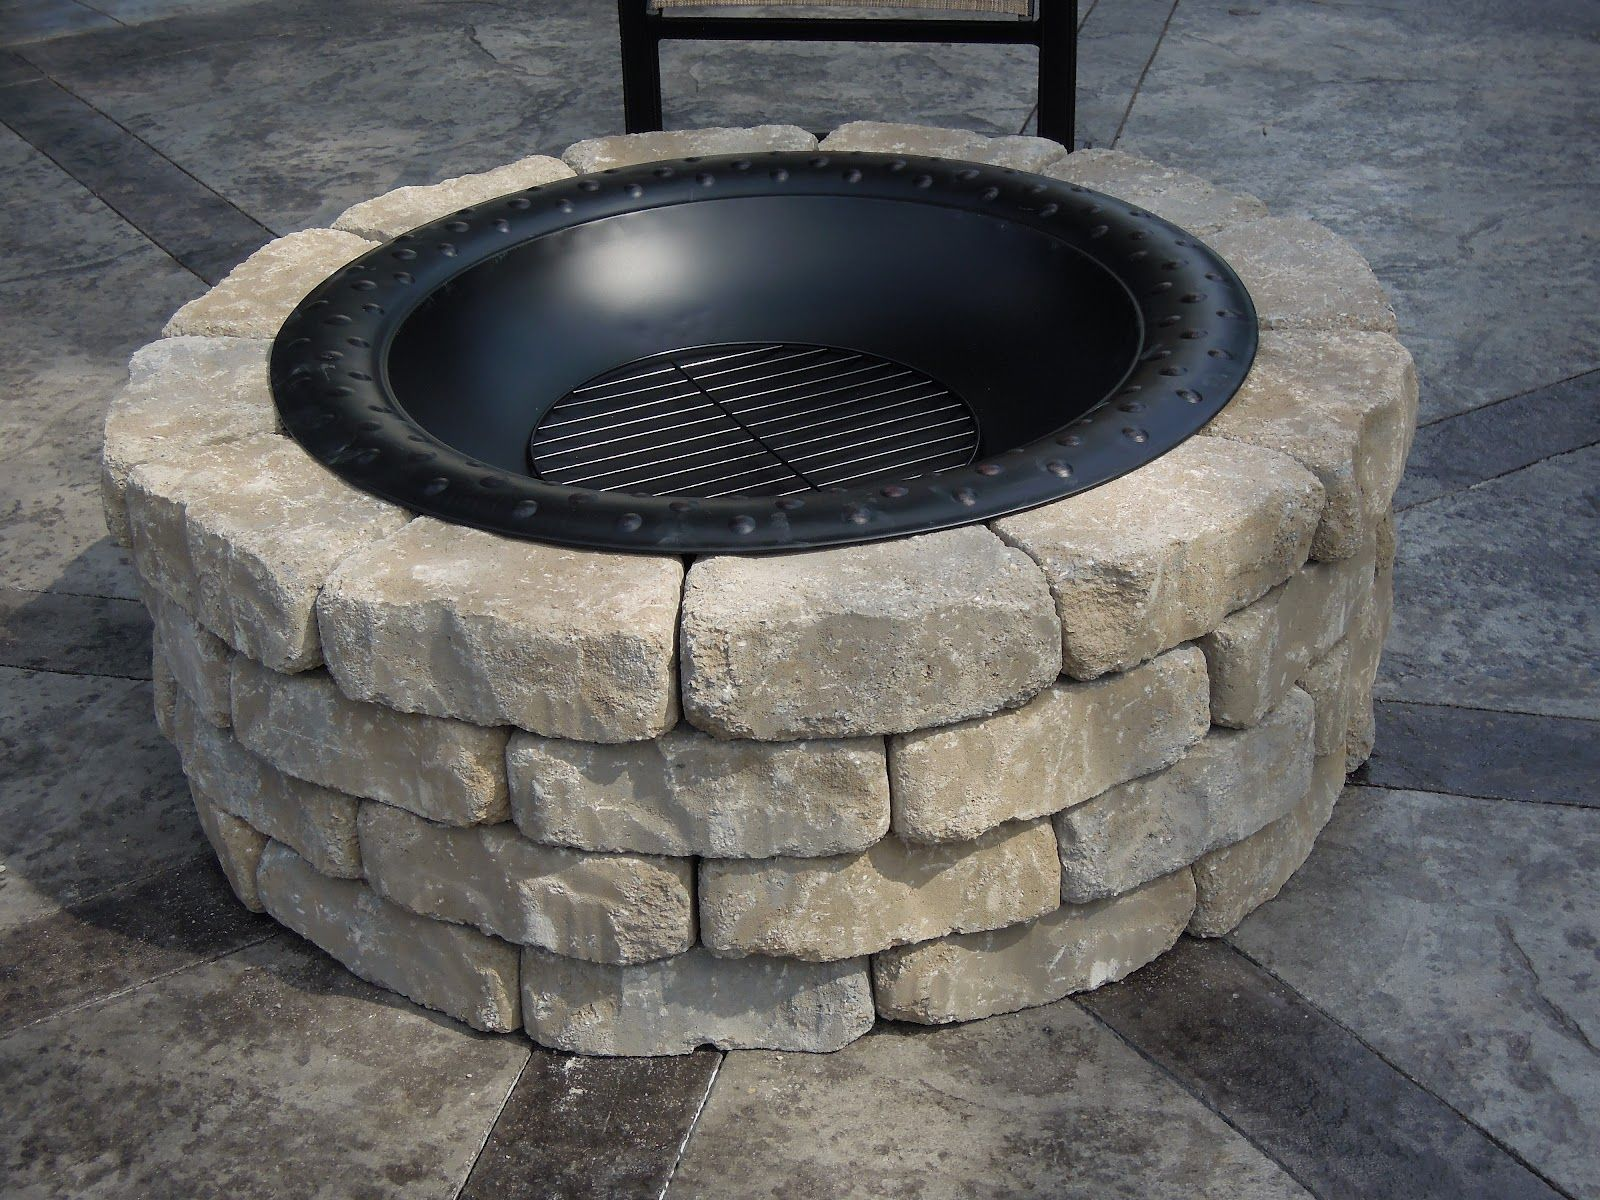 Amazing Fire Pit Bricks Lowes Part - 8: Immaculate White Stone Fire Pit Ring On Cement Pavers Backyards As Decorate  Custom DIY Fire Pit